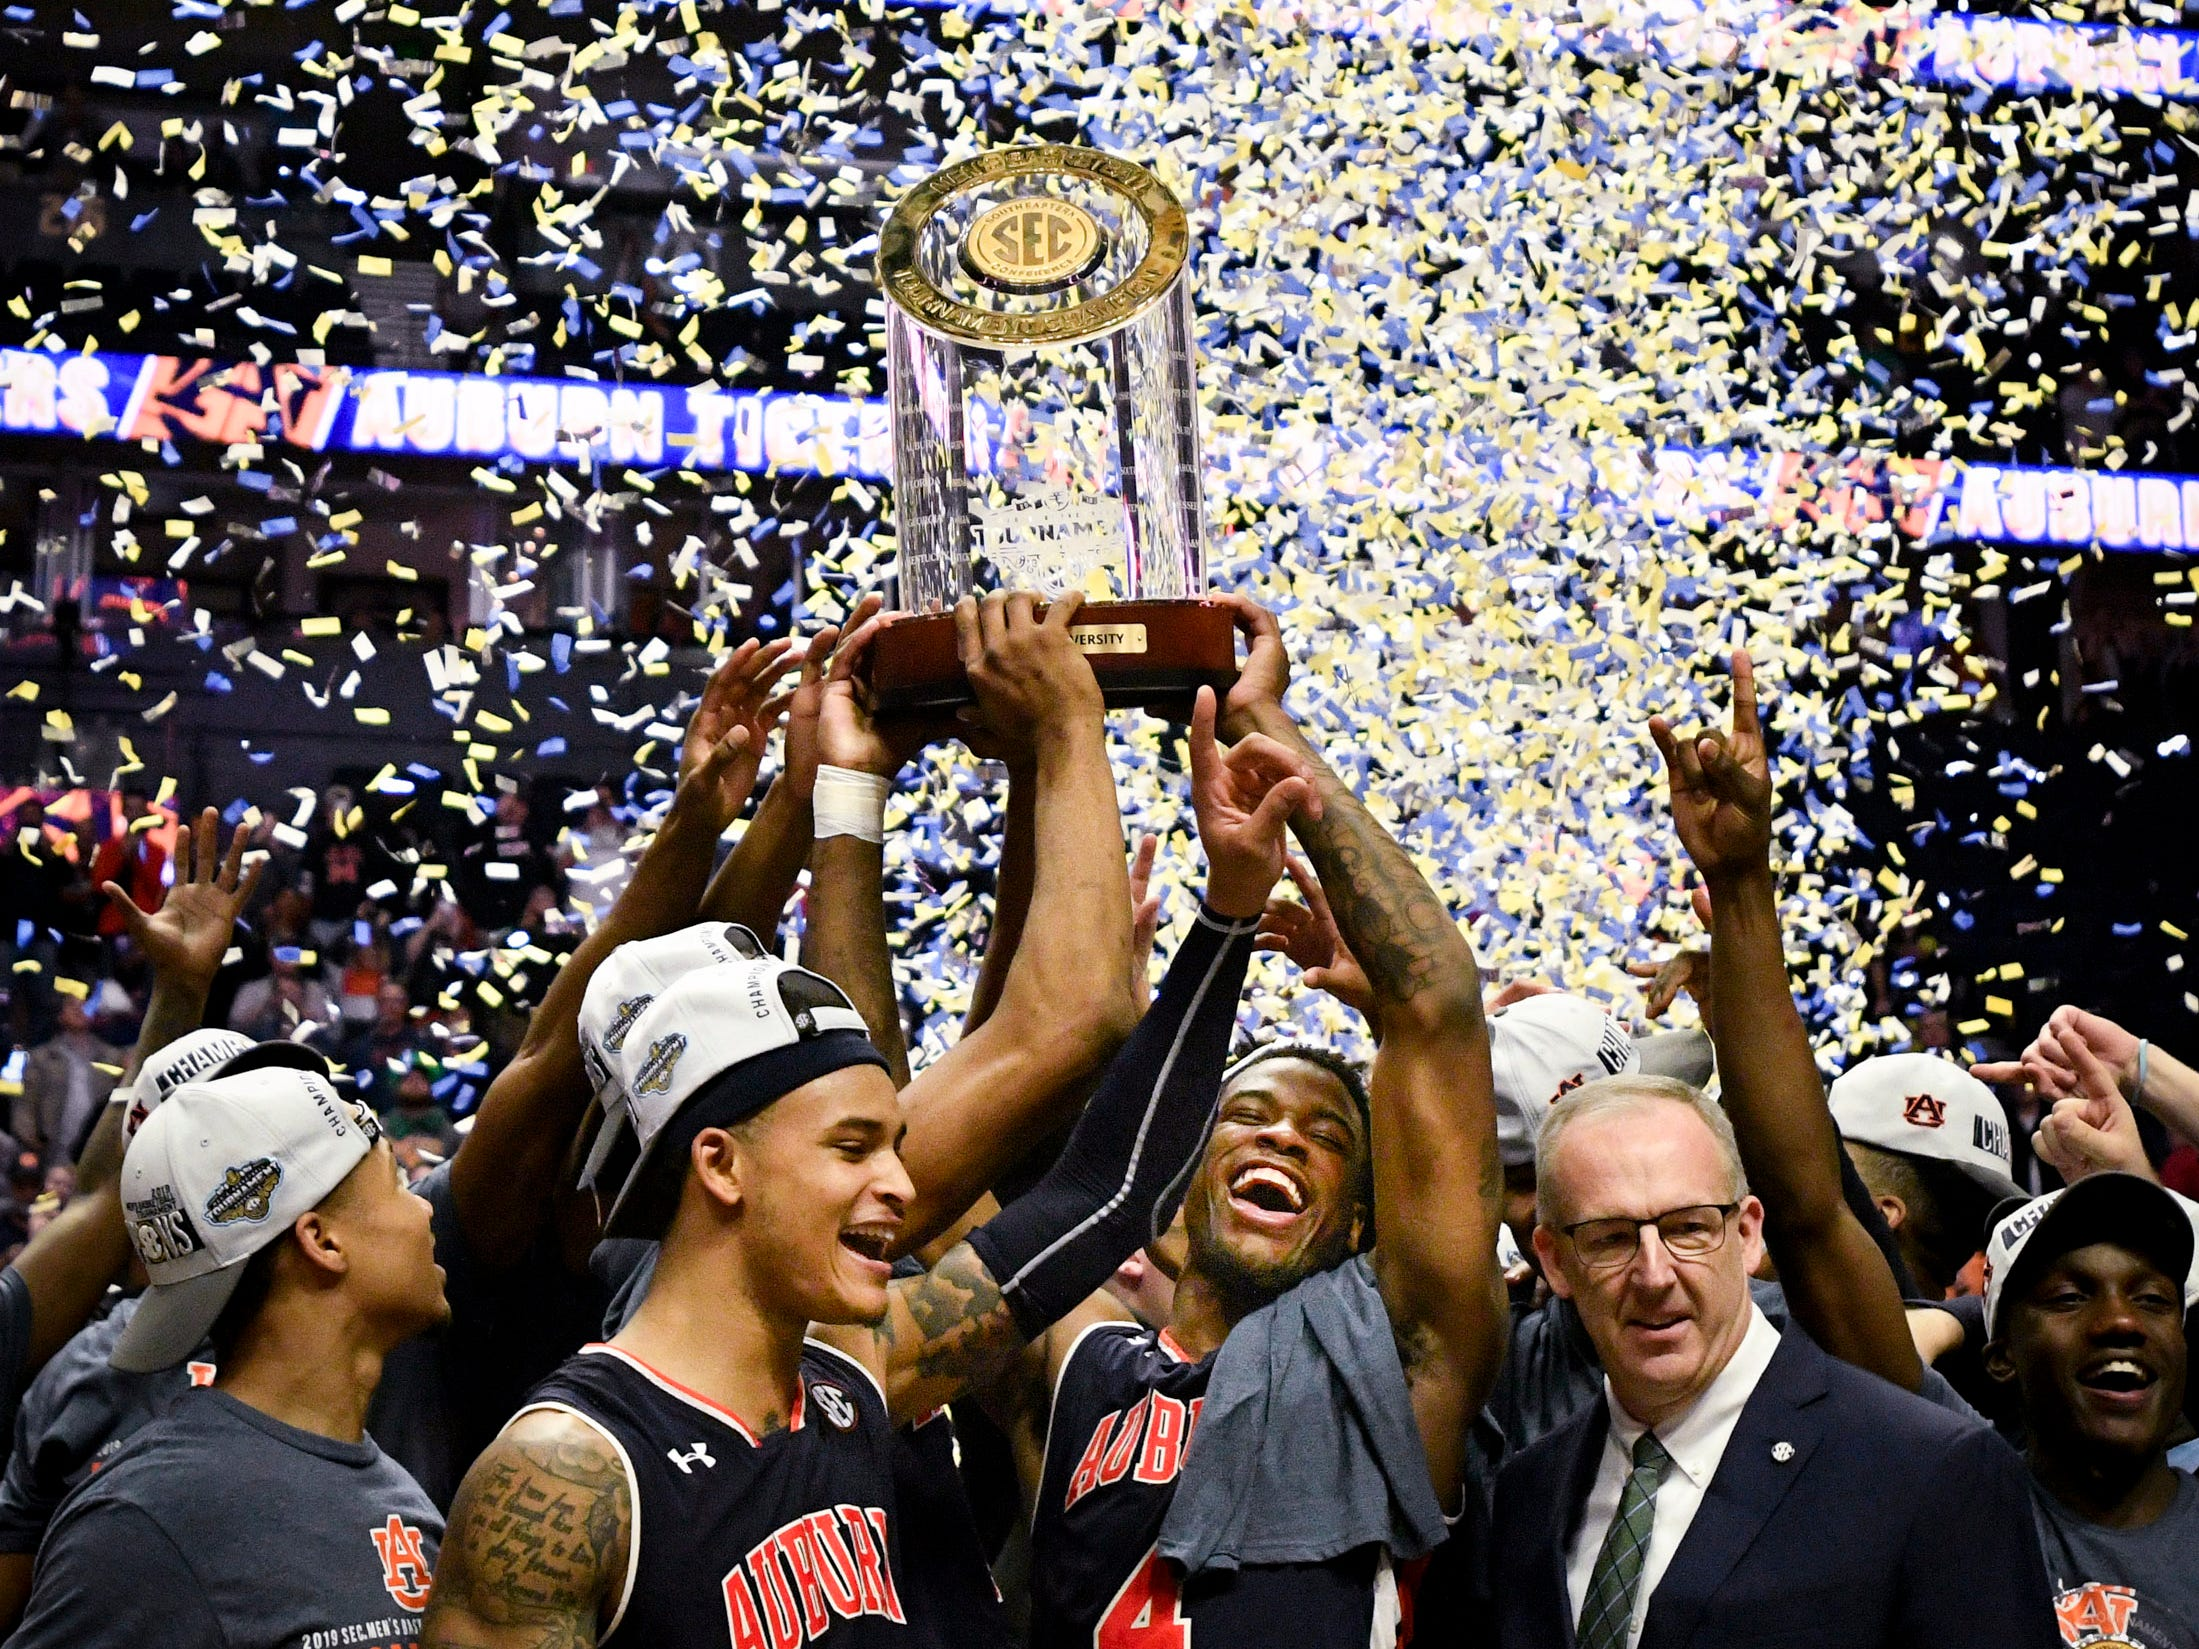 Auburn celebrates after their SEC Men's Basketball Tournament championship victory against Tennessee at Bridgestone Arena in Nashville, Tenn., Sunday, March 17, 2019.